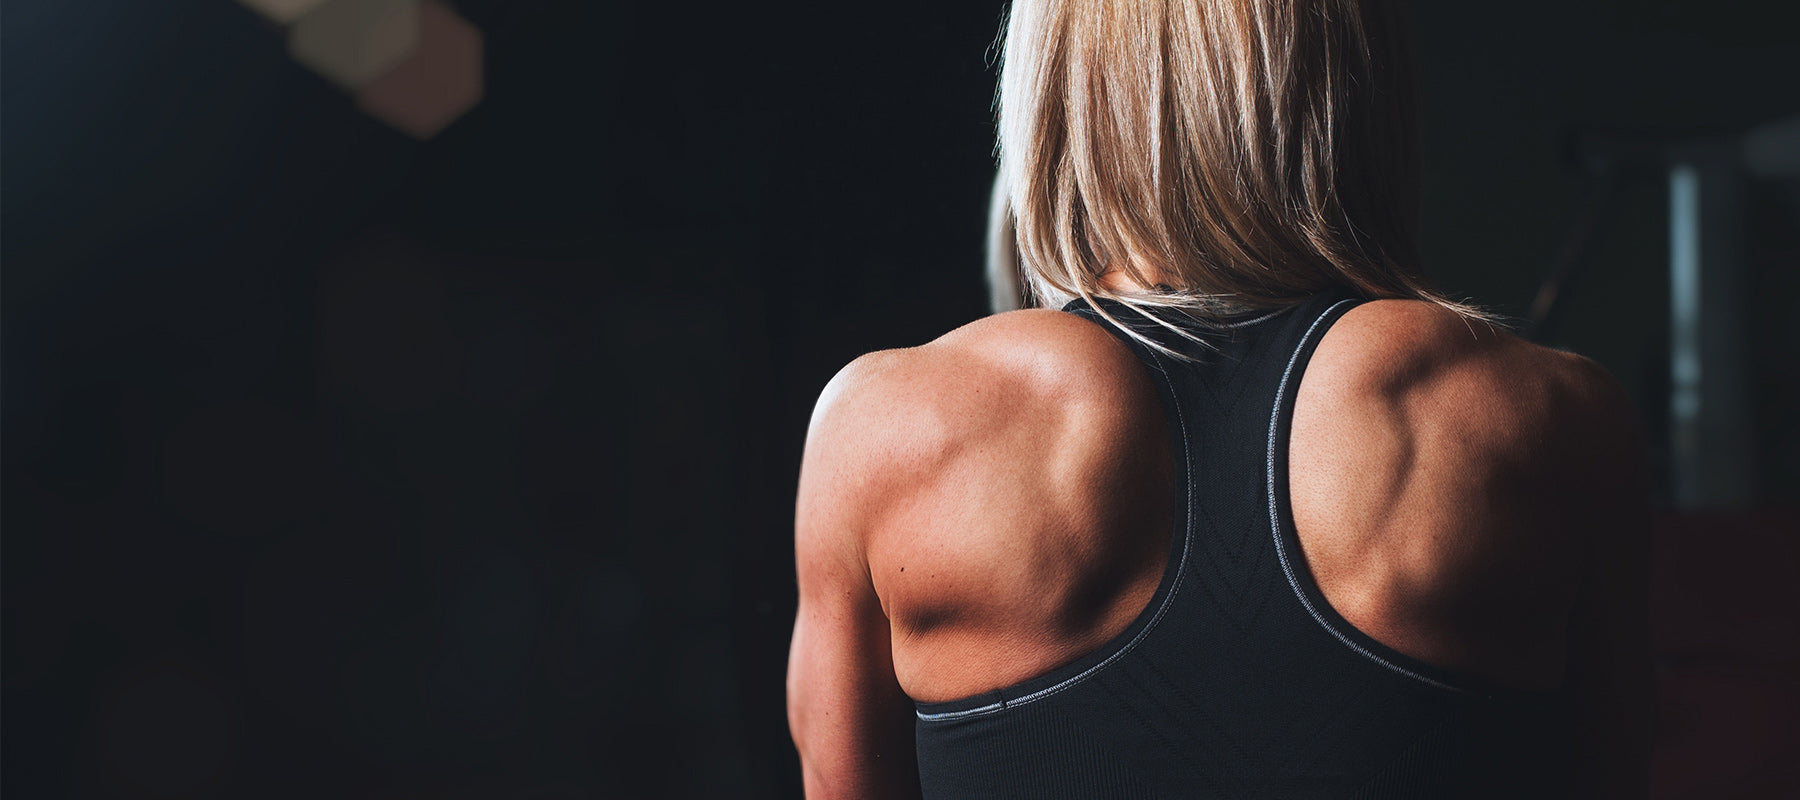 Woman Back Weight Lifting Muscles